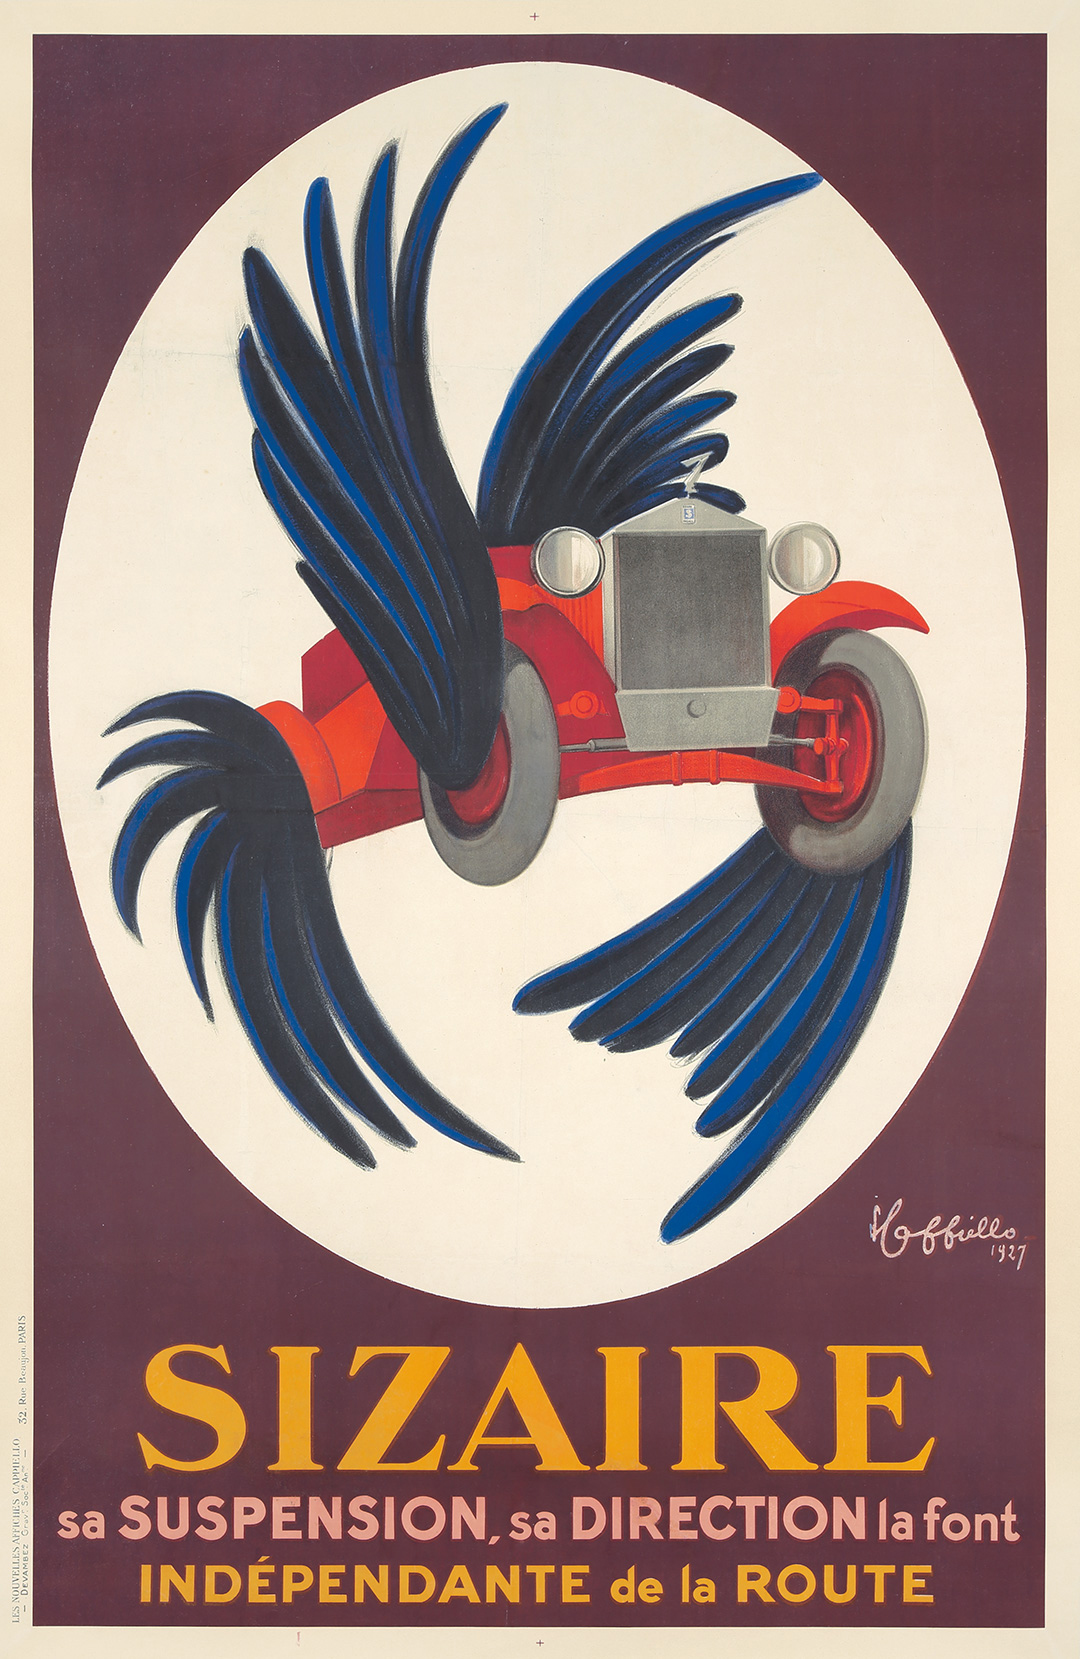 192. Sizaire. 1927.